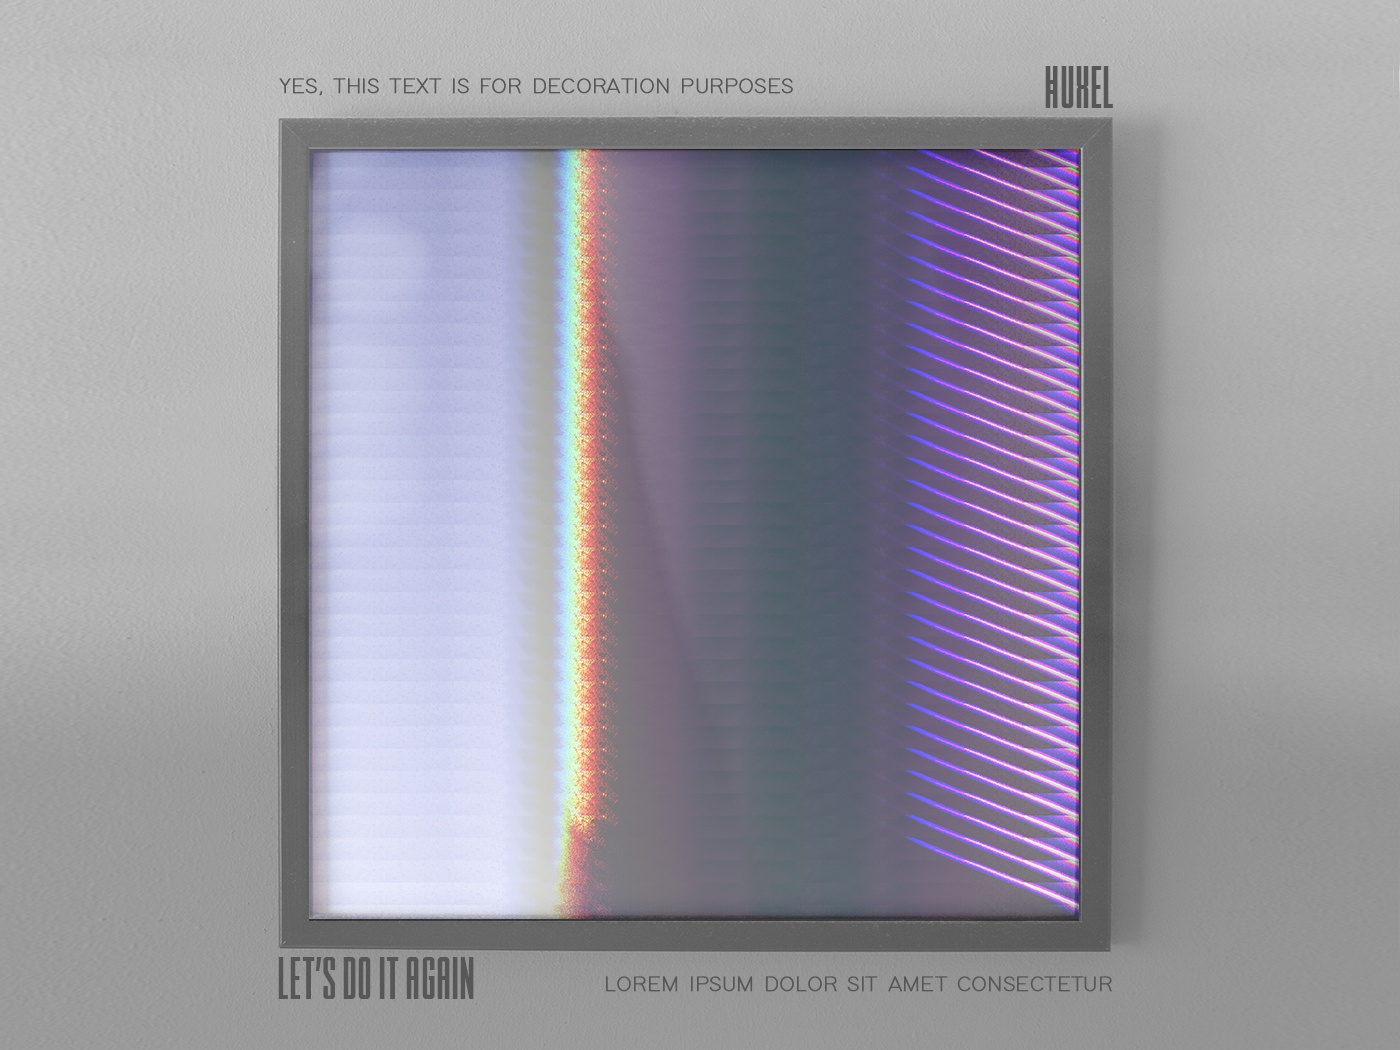 Let's Do It Again glitchart psychedelic trippy futuristic framed aesthetic glitch abstract illustration artwork huxelart huxel